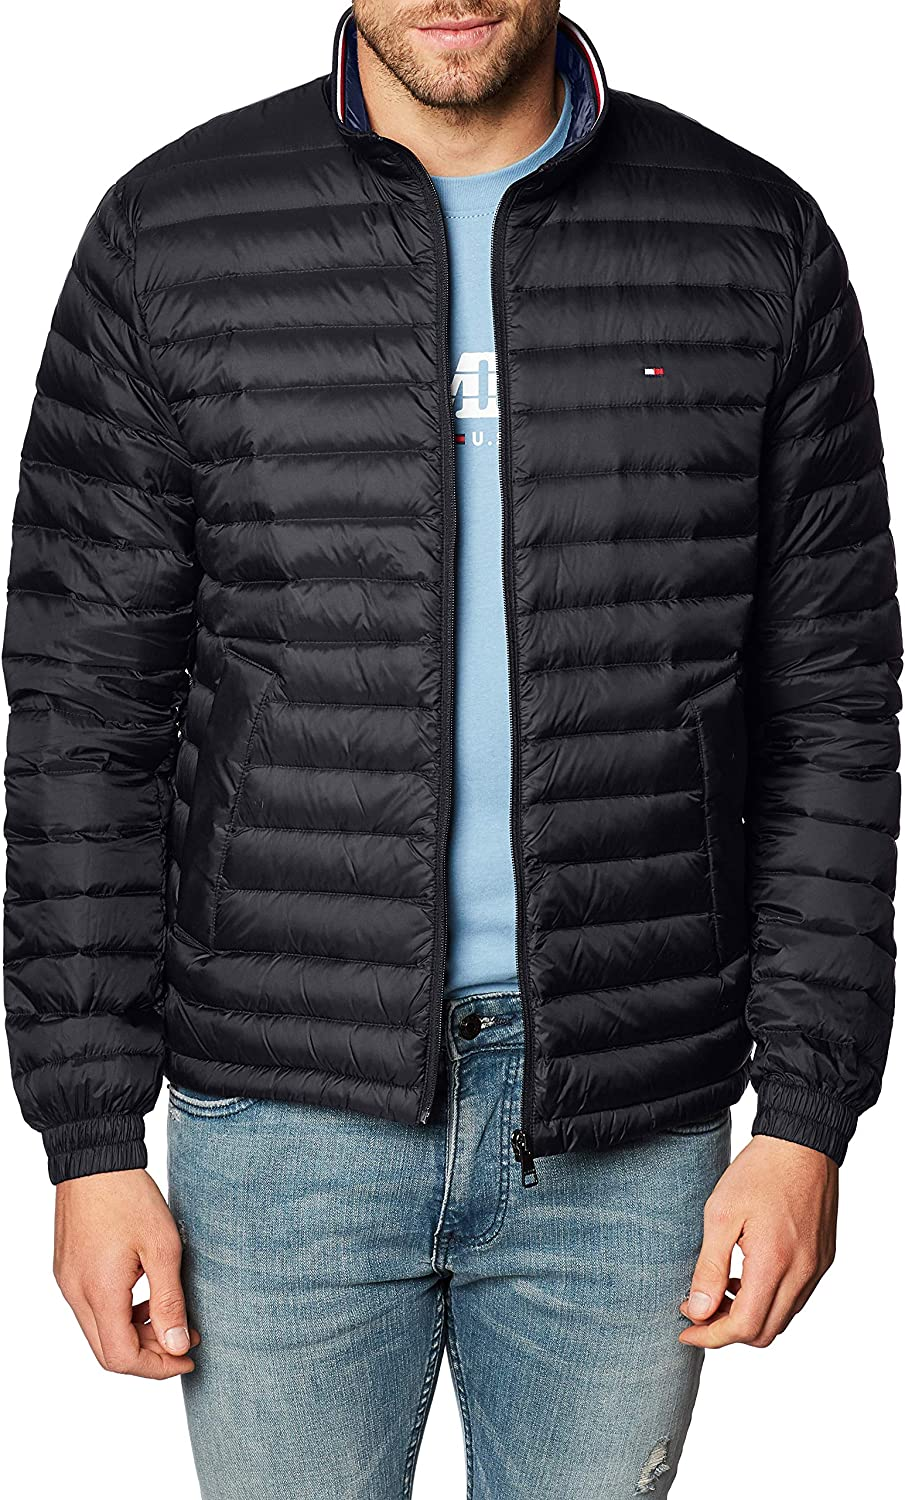 Tommy Hilfiger Men's Core Down Packable Year-end annual account Direct stock discount Jacket Black